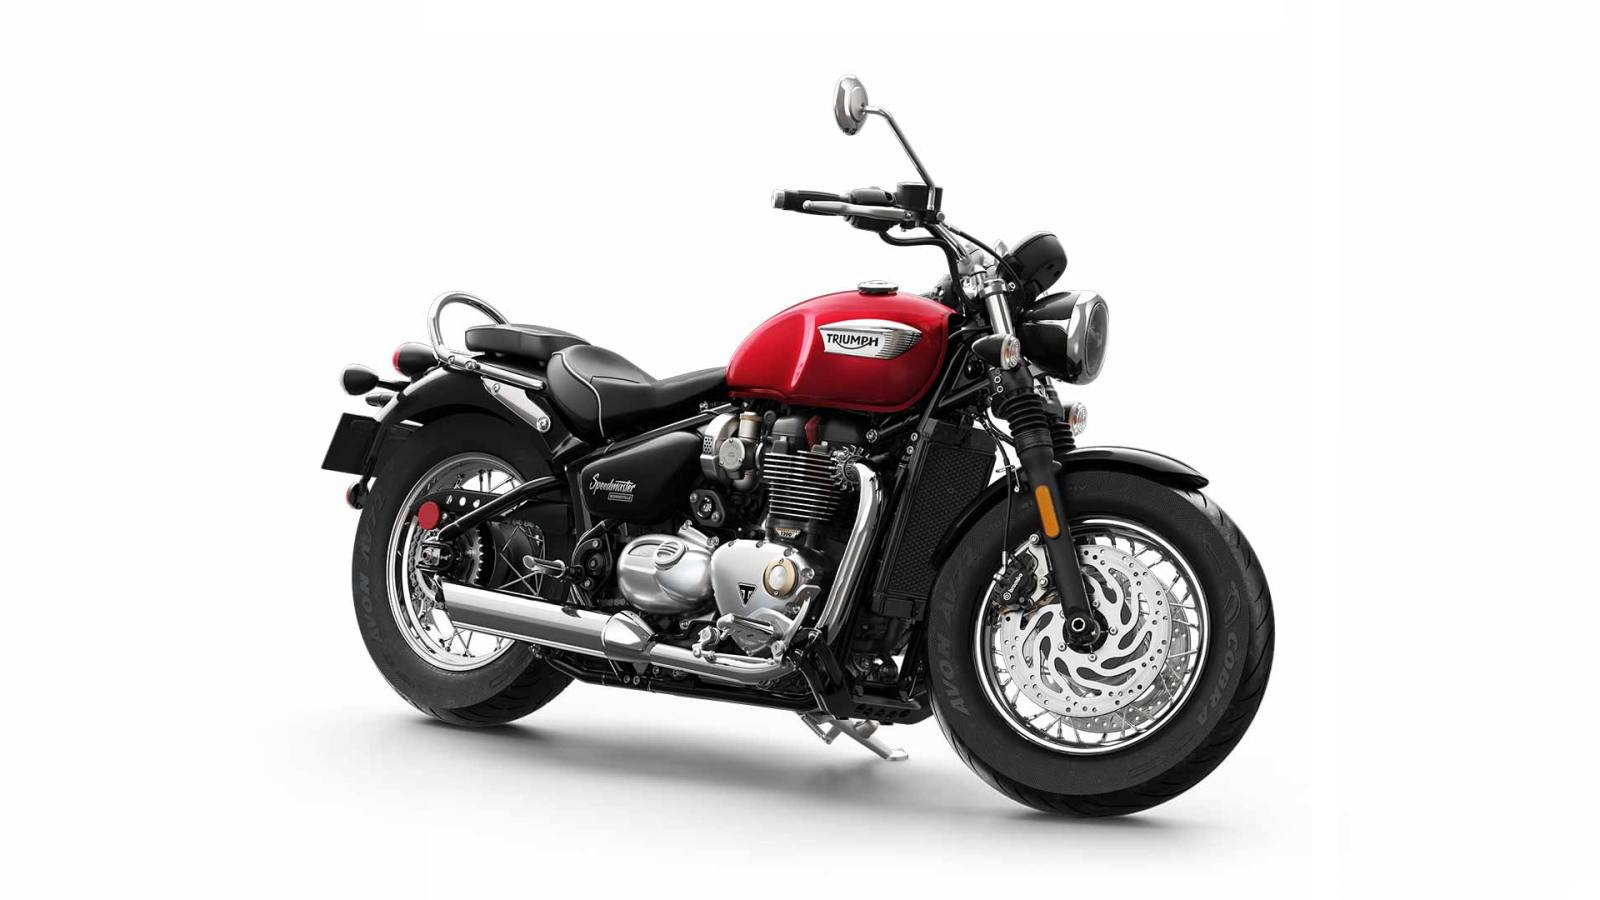 2019 Triumph Bonneville Speedmaster Color For Sale In Roseville